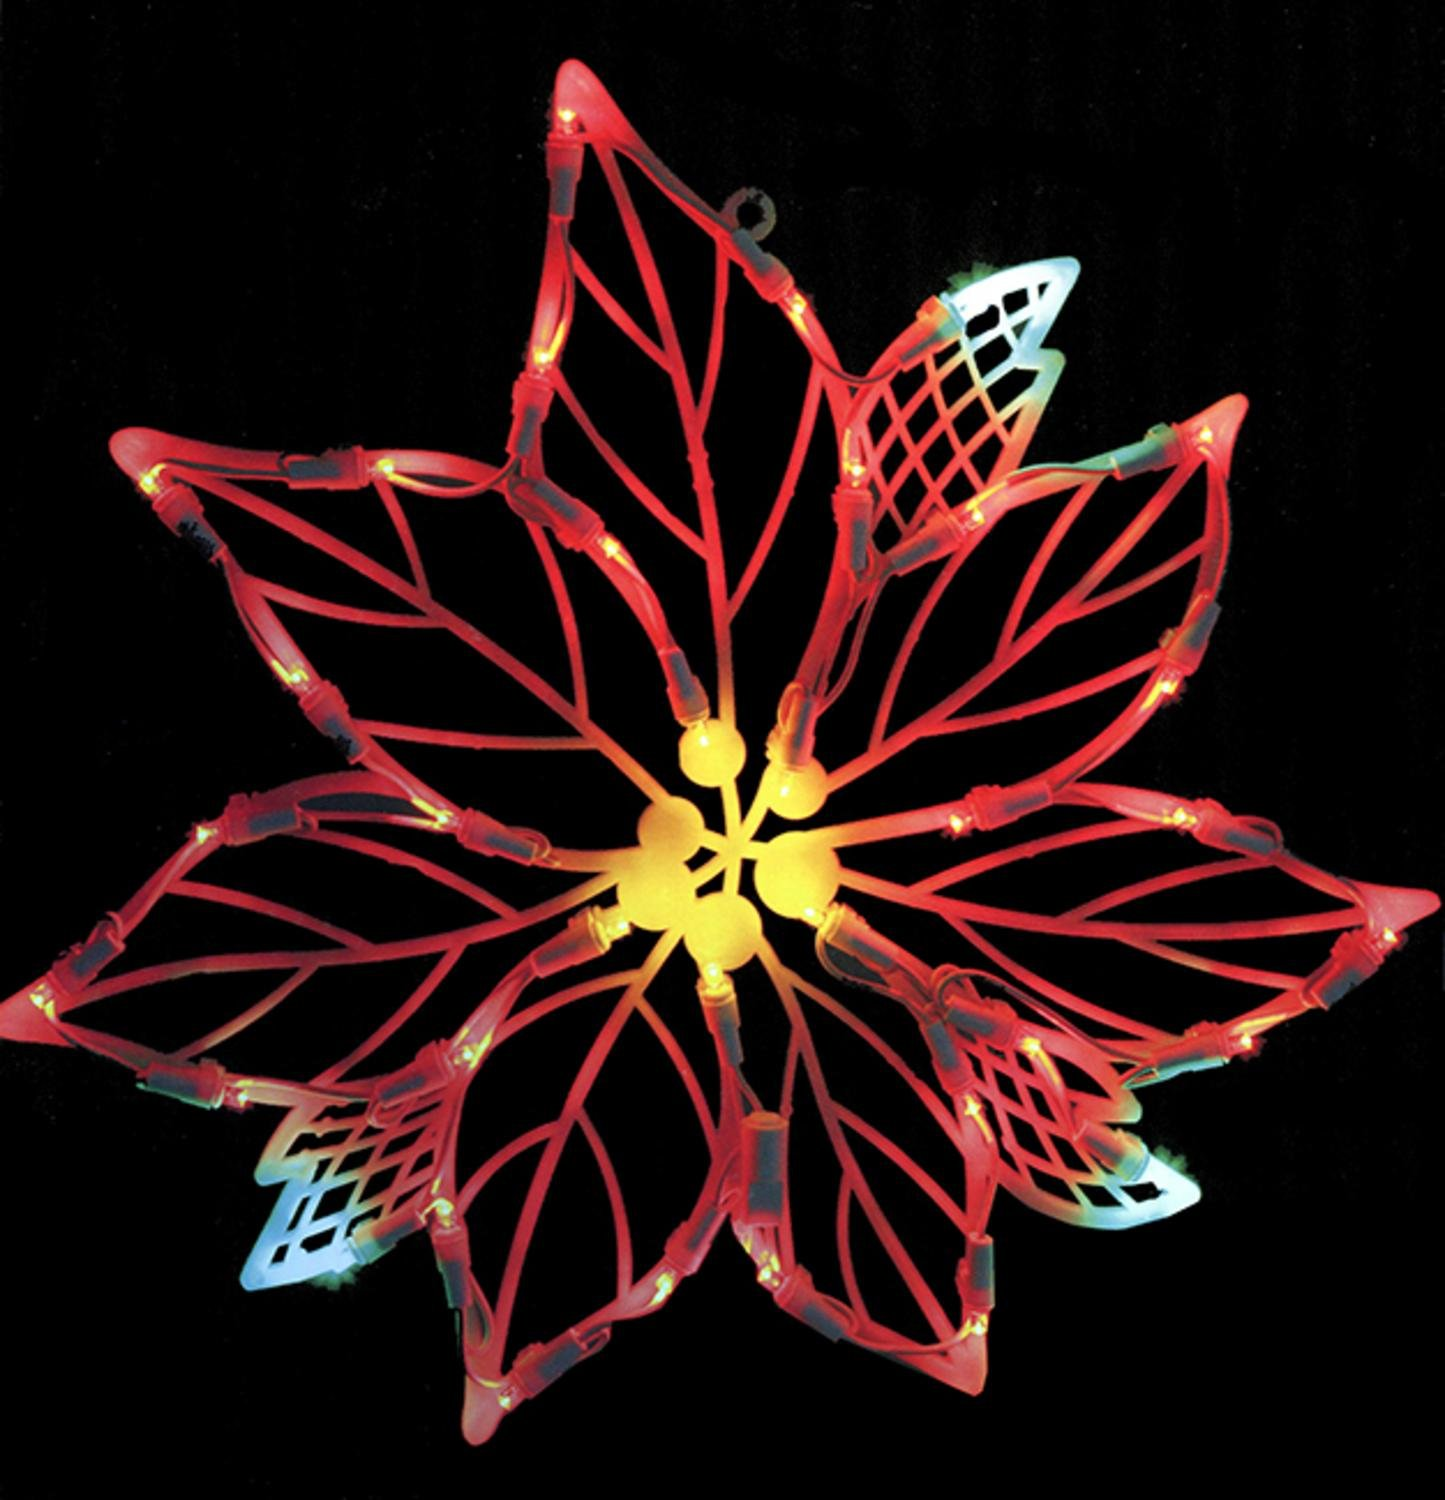 Amazon.com: Vickerman Lighted LED Poinsettia Flower Christmas ...